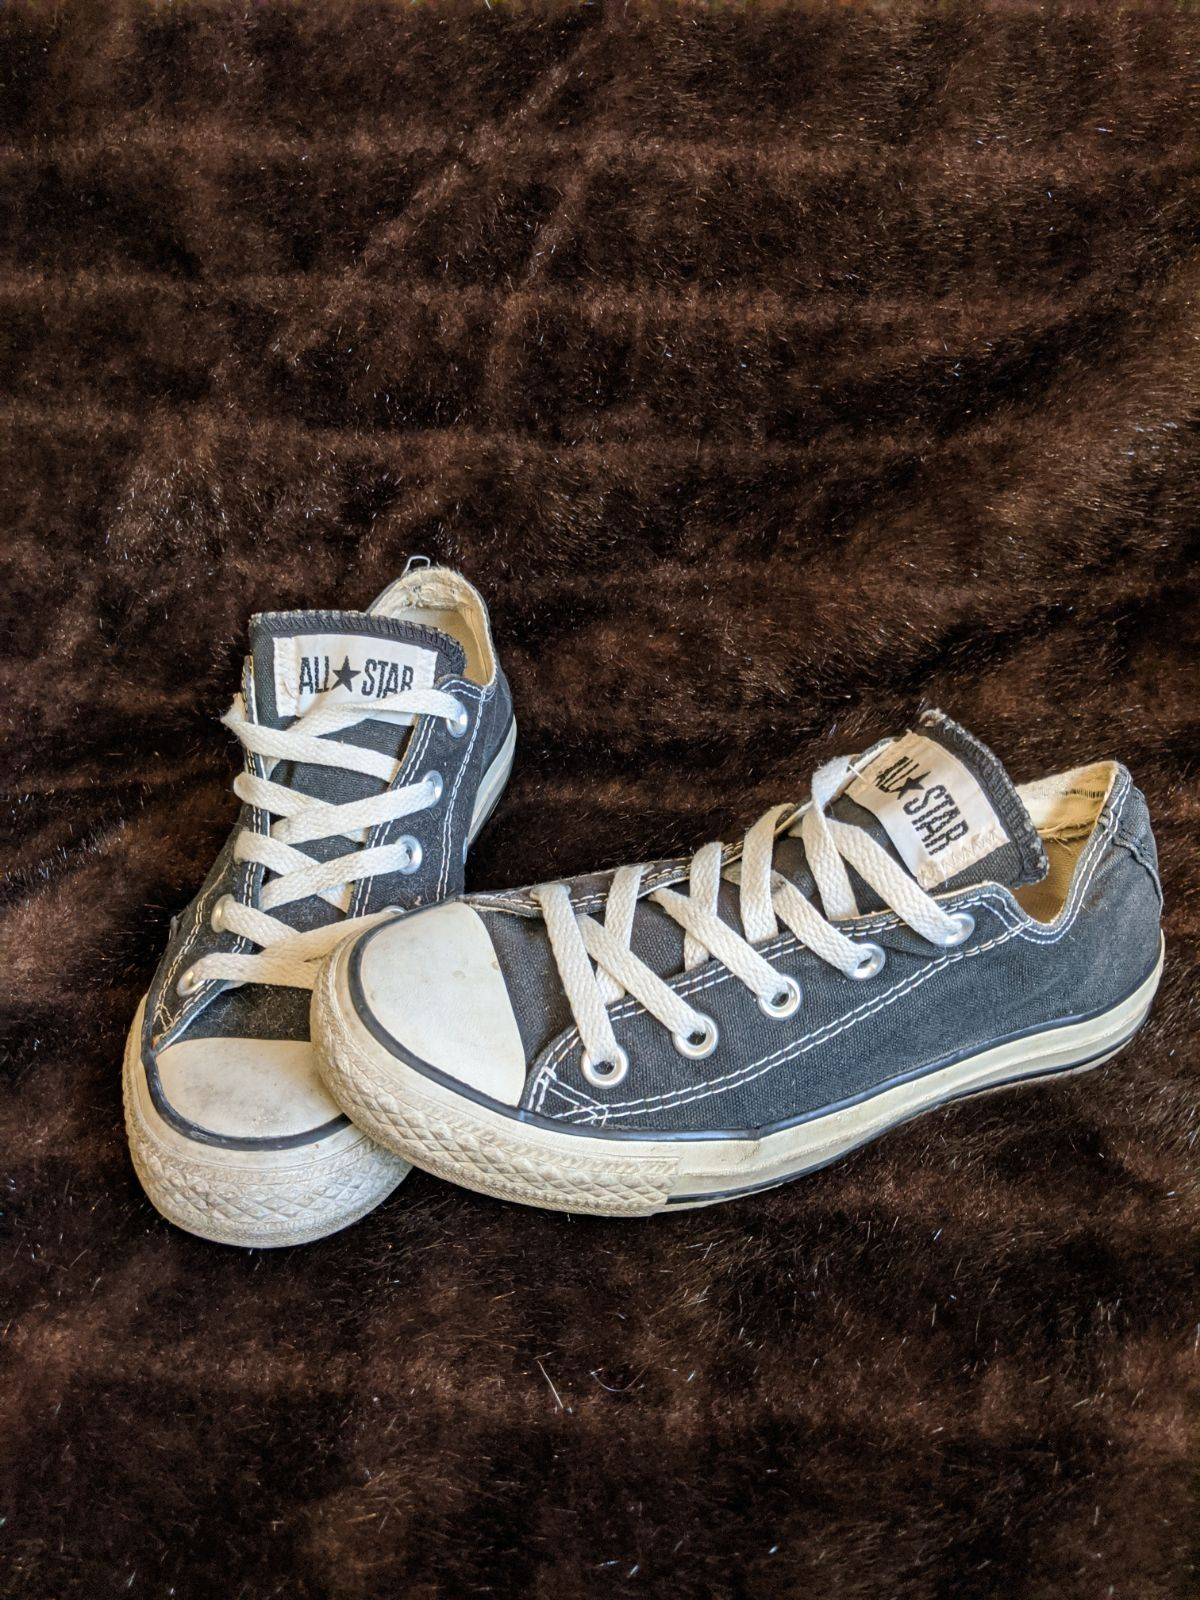 Converse with some character! No tears just normal wear